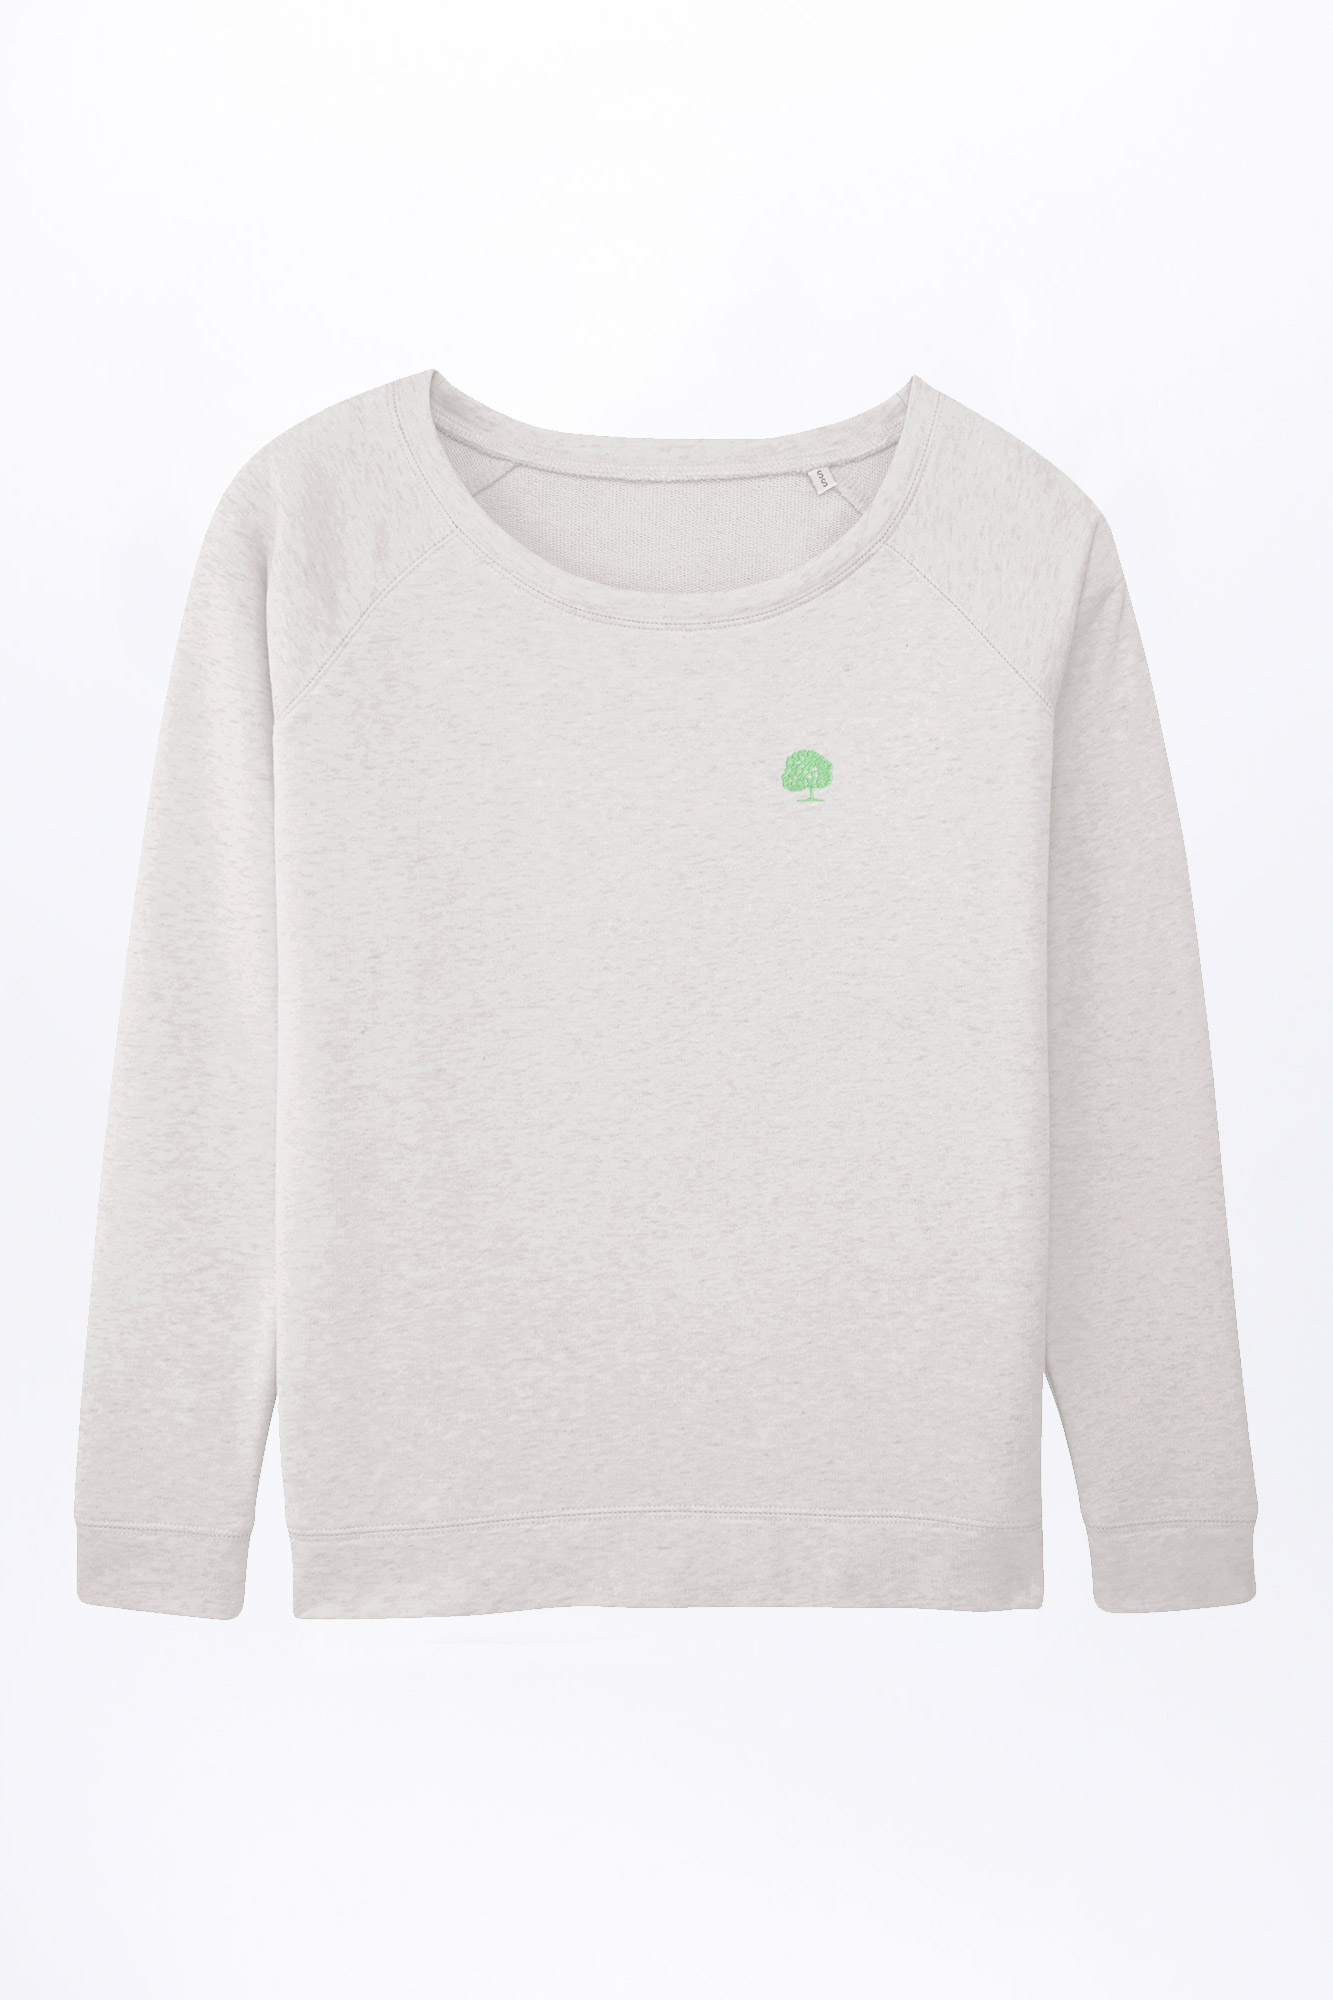 W-STSW050-Standard-Sweatshirt-Fair-Trade-Heather-Ash